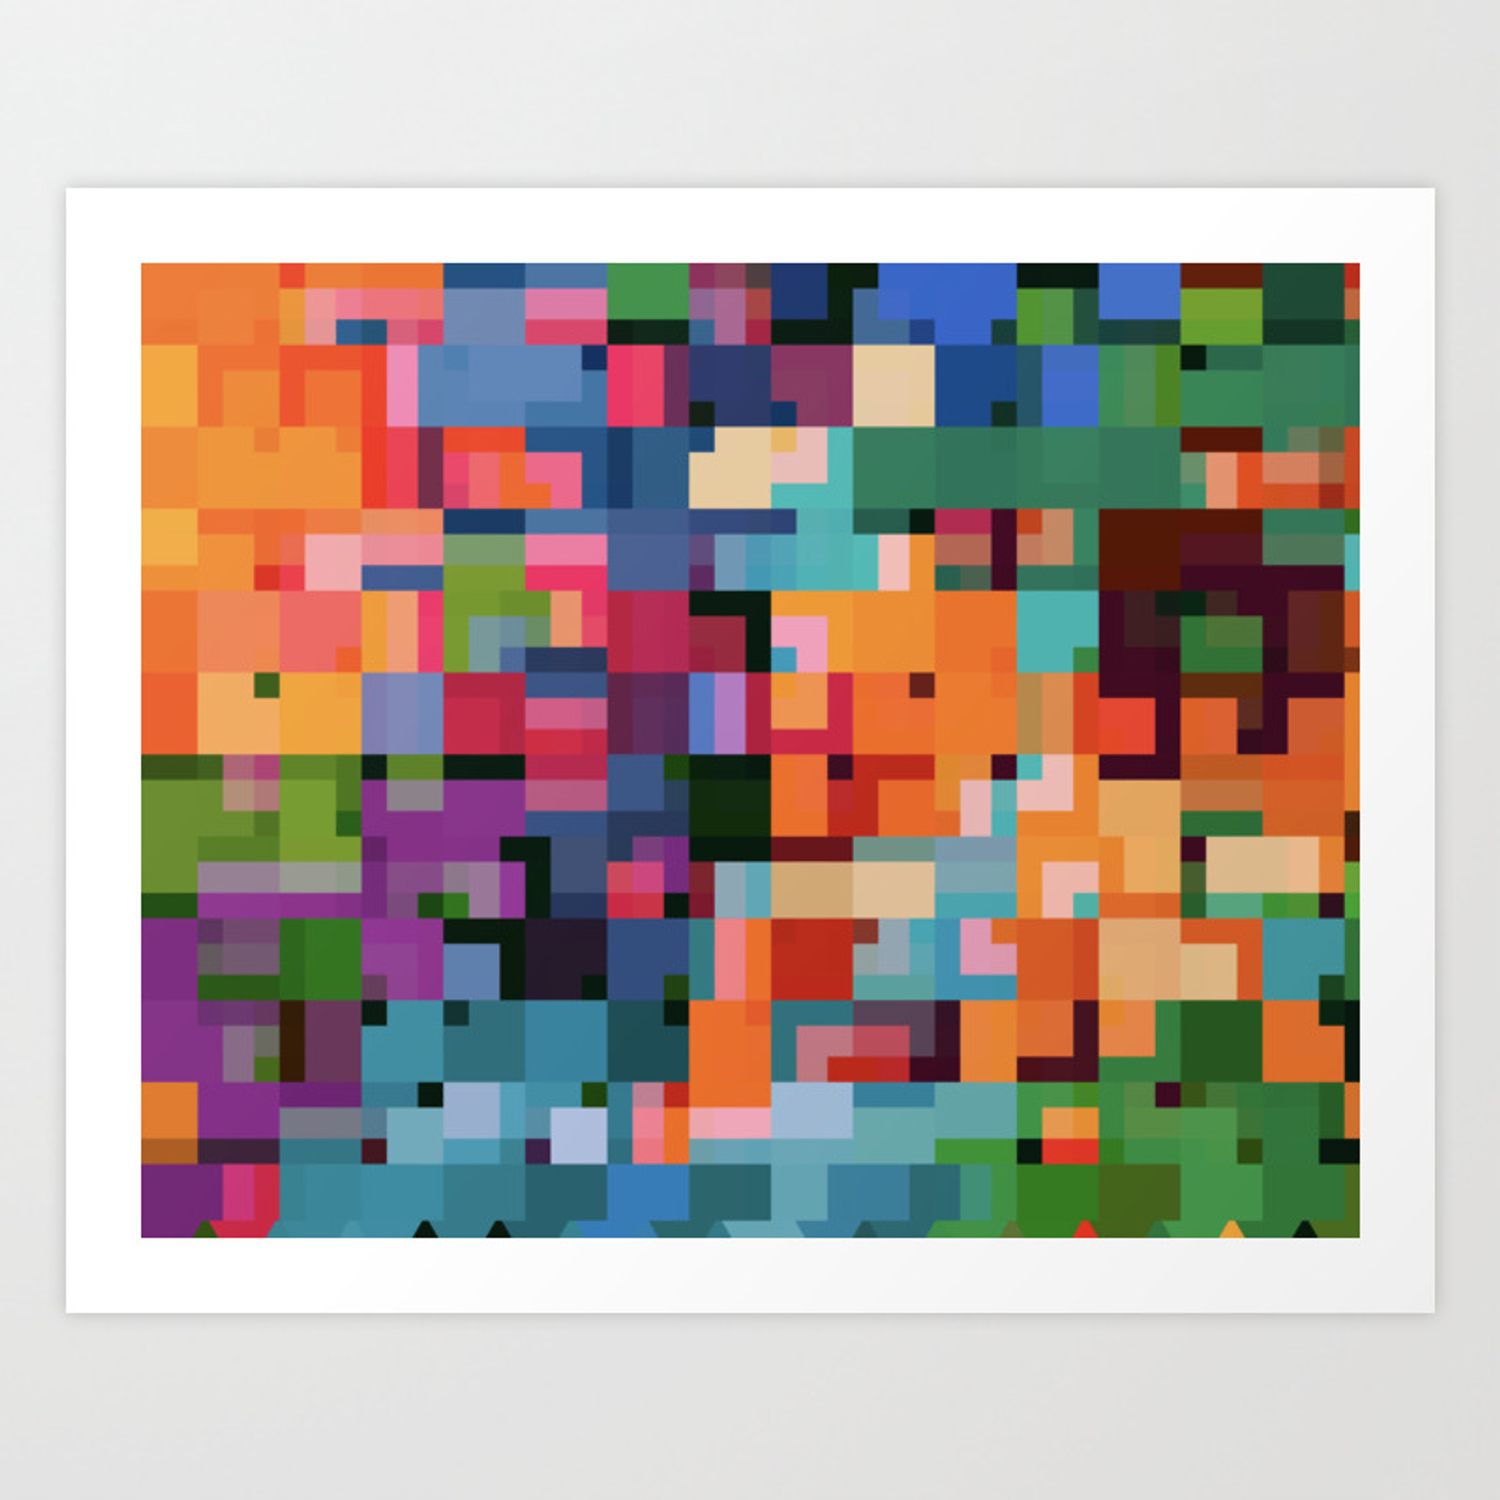 Colorful Squares Abstract Art Decim8 Home Decor Gift Art Print By Abstractarts Society6